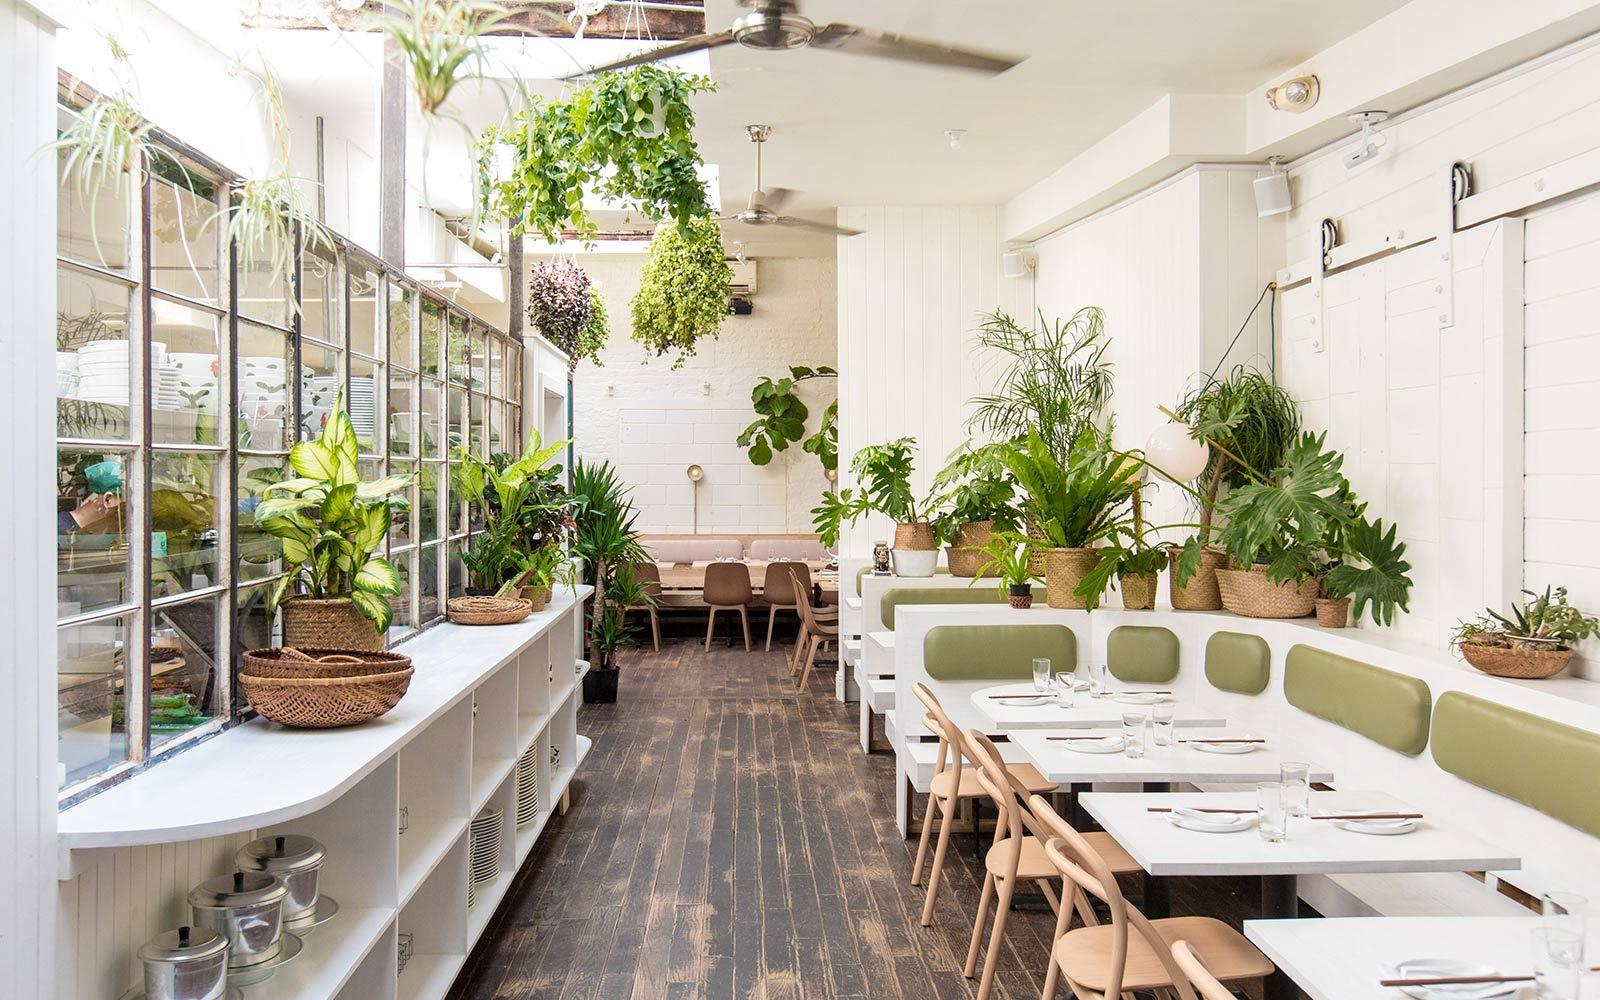 The Best Designed New Restaurant Interiors Of 2019 With Images